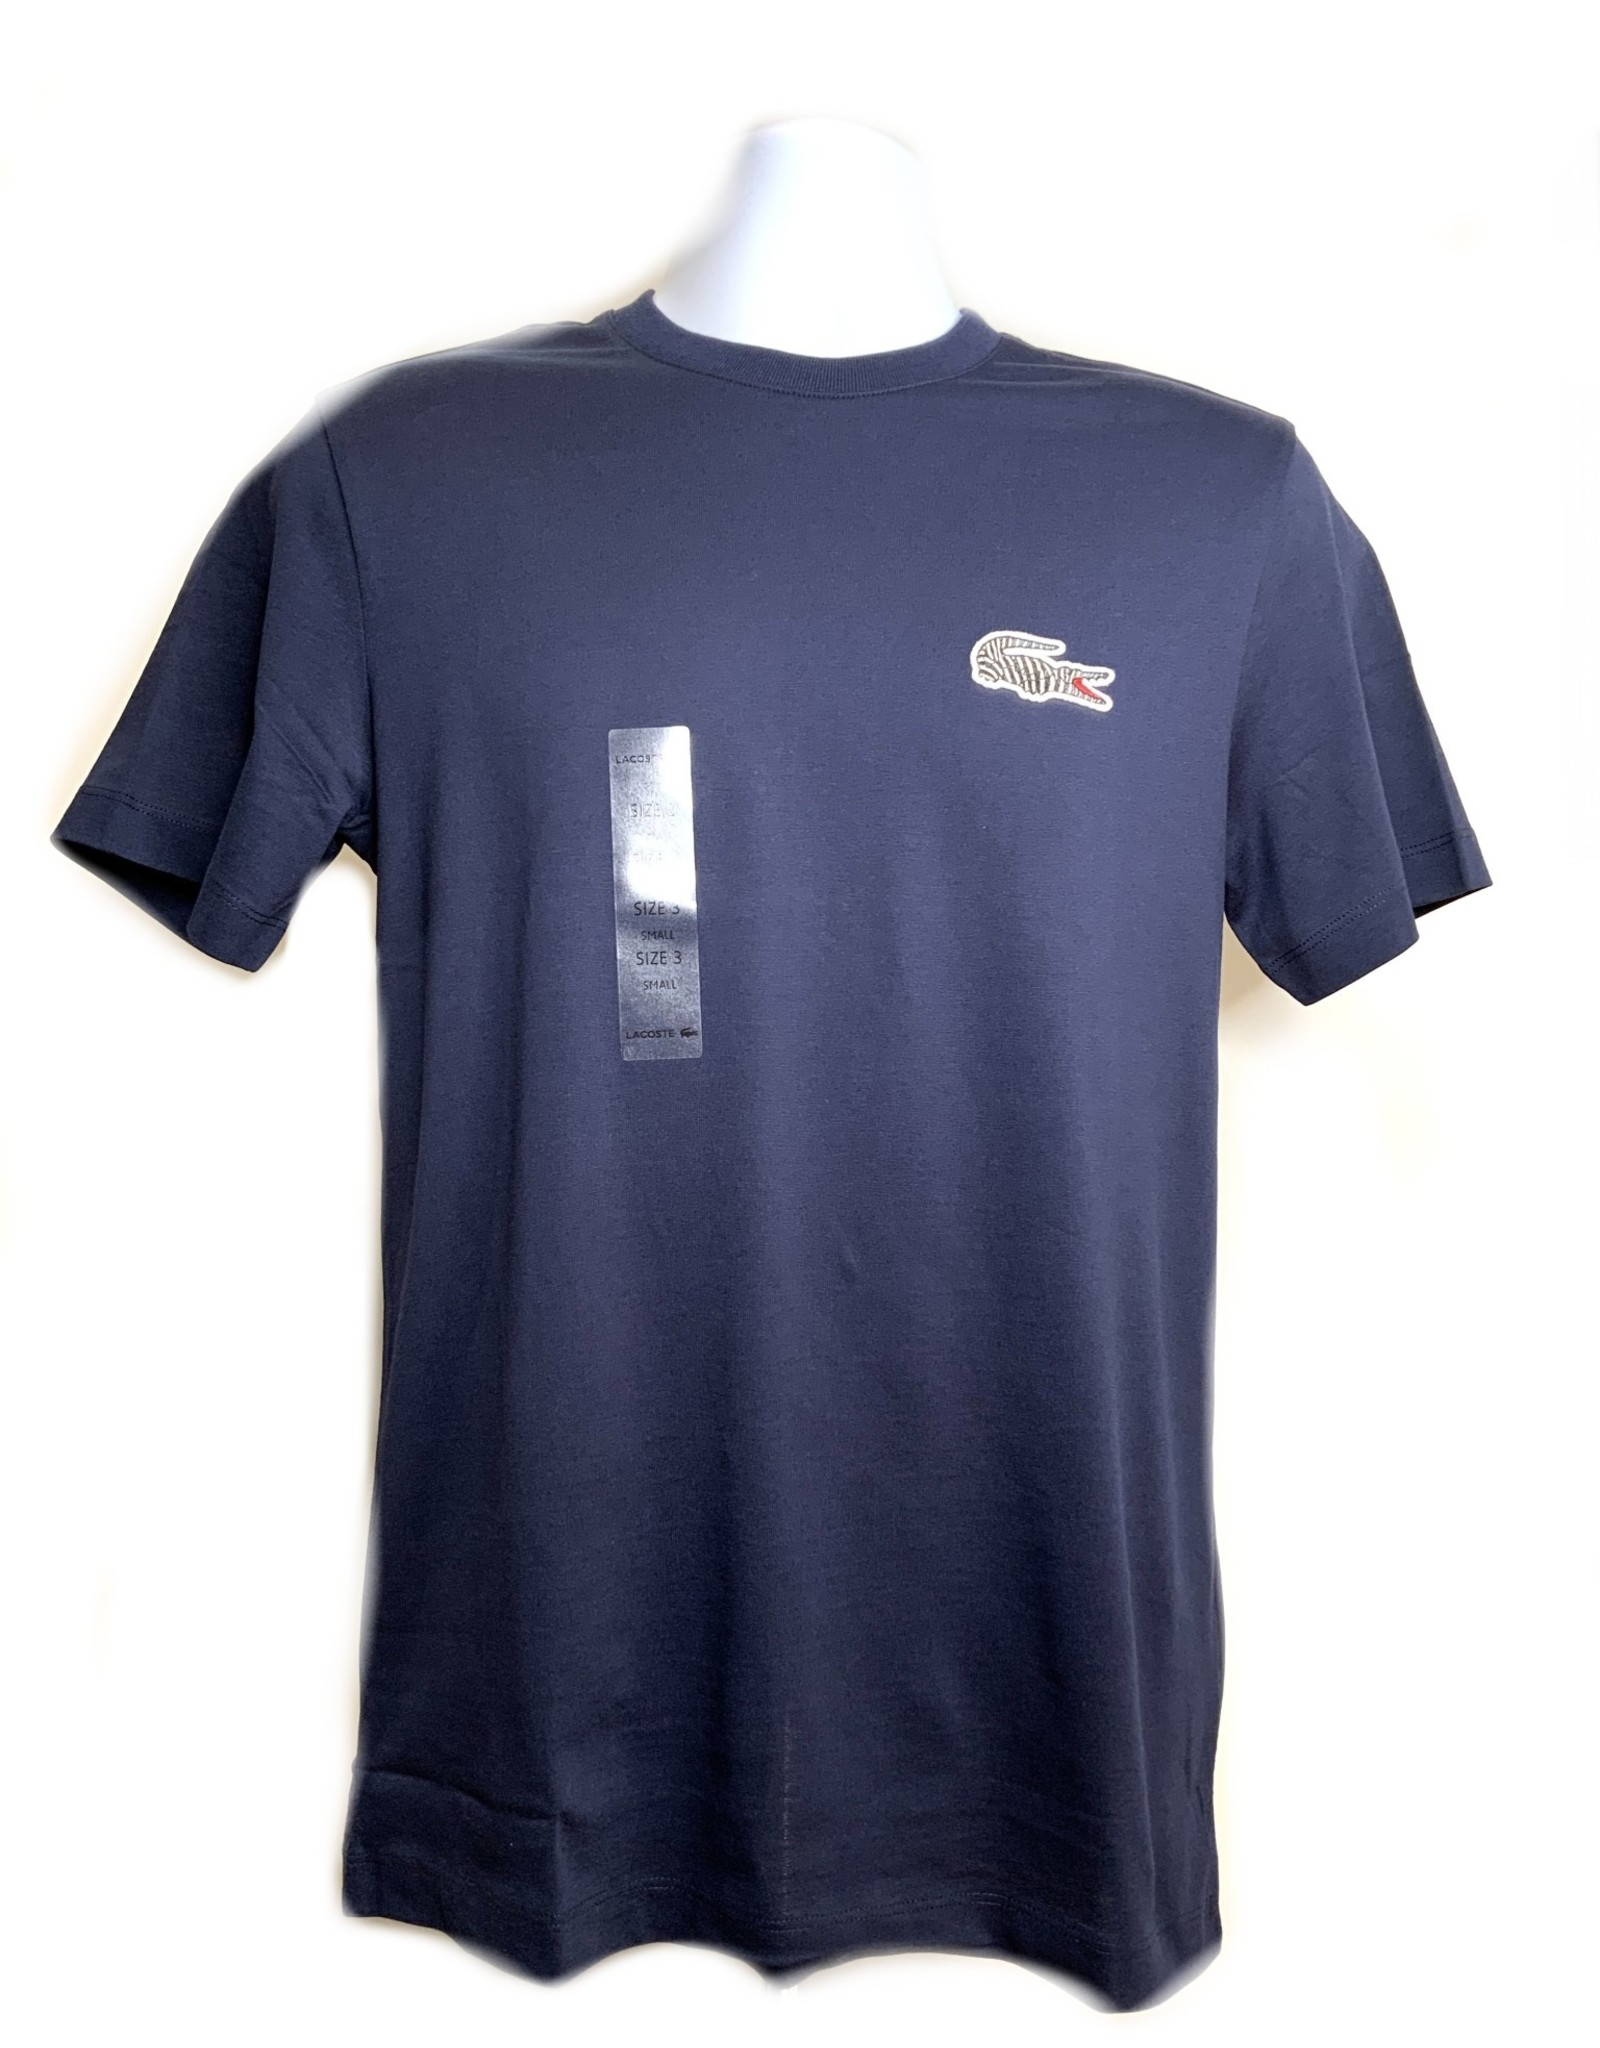 Lacoste Lacoste T-Shirt National Geographic